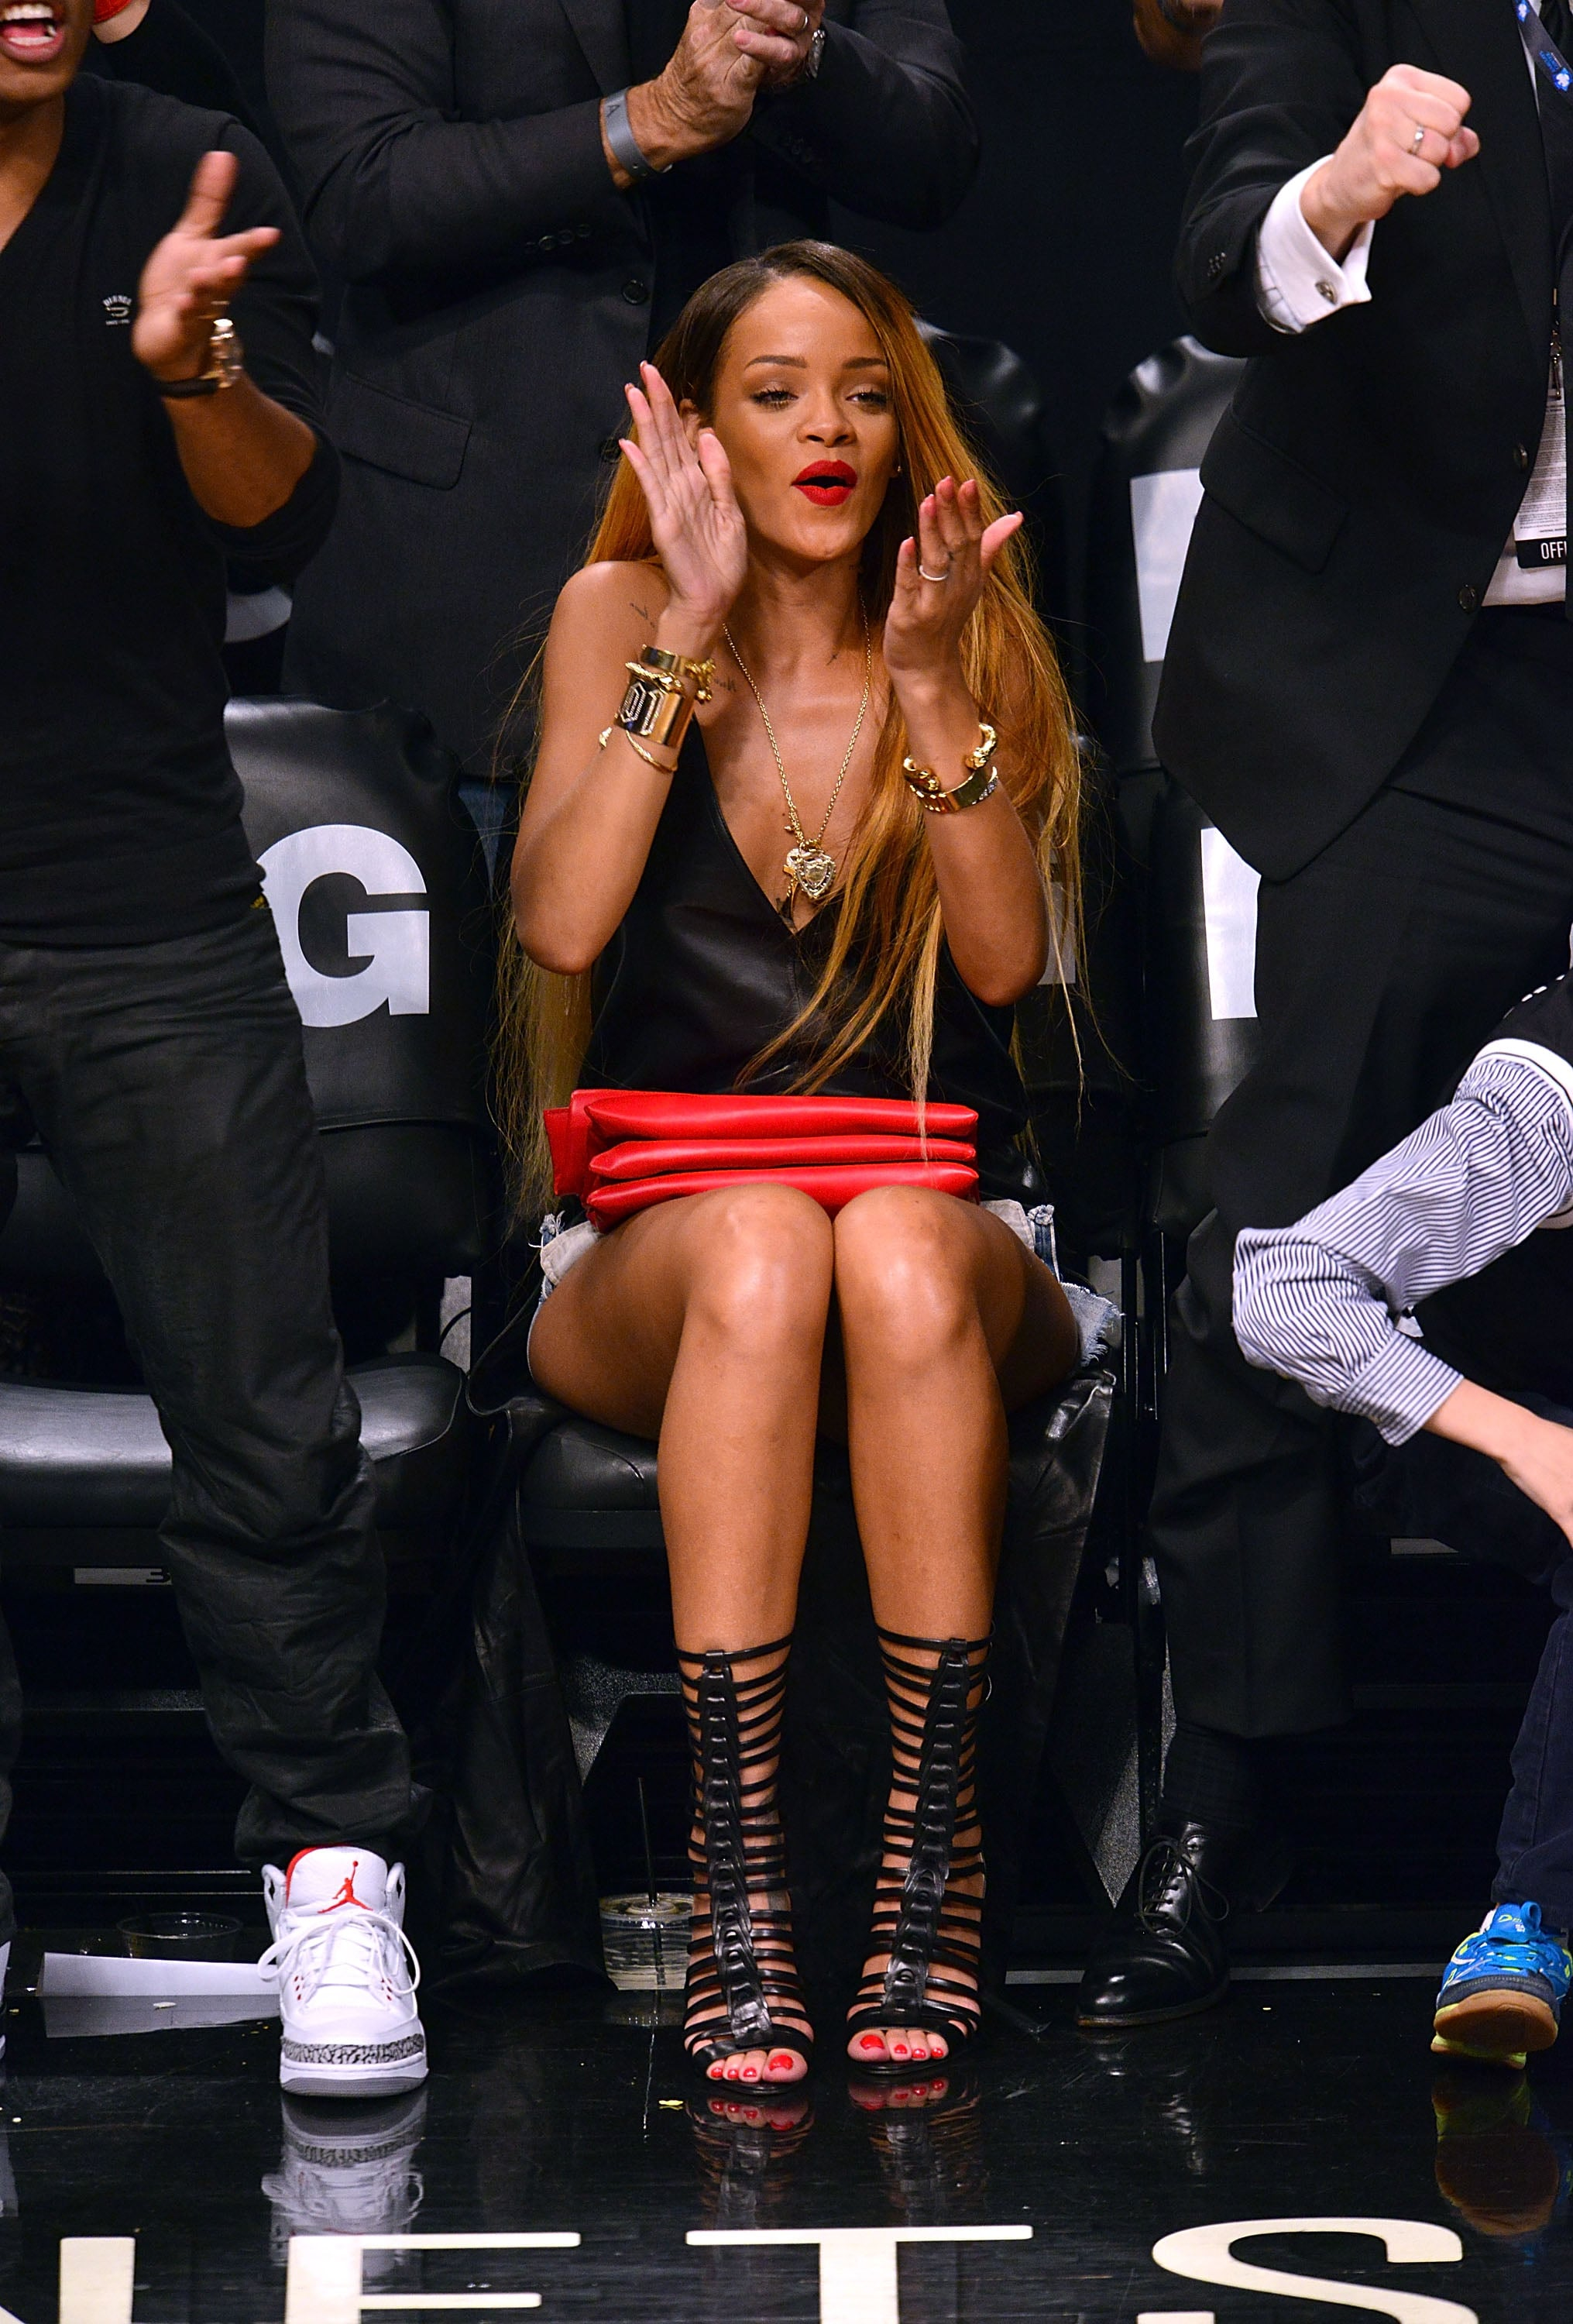 Rihanna sat courtside at a Brooklyn Nets playoff game in April looking risqué in a black leather tank and caged sandal boots by Brian Atwood. For accessories, the singer chose a bright red clutch and a bevy of gold jewels.